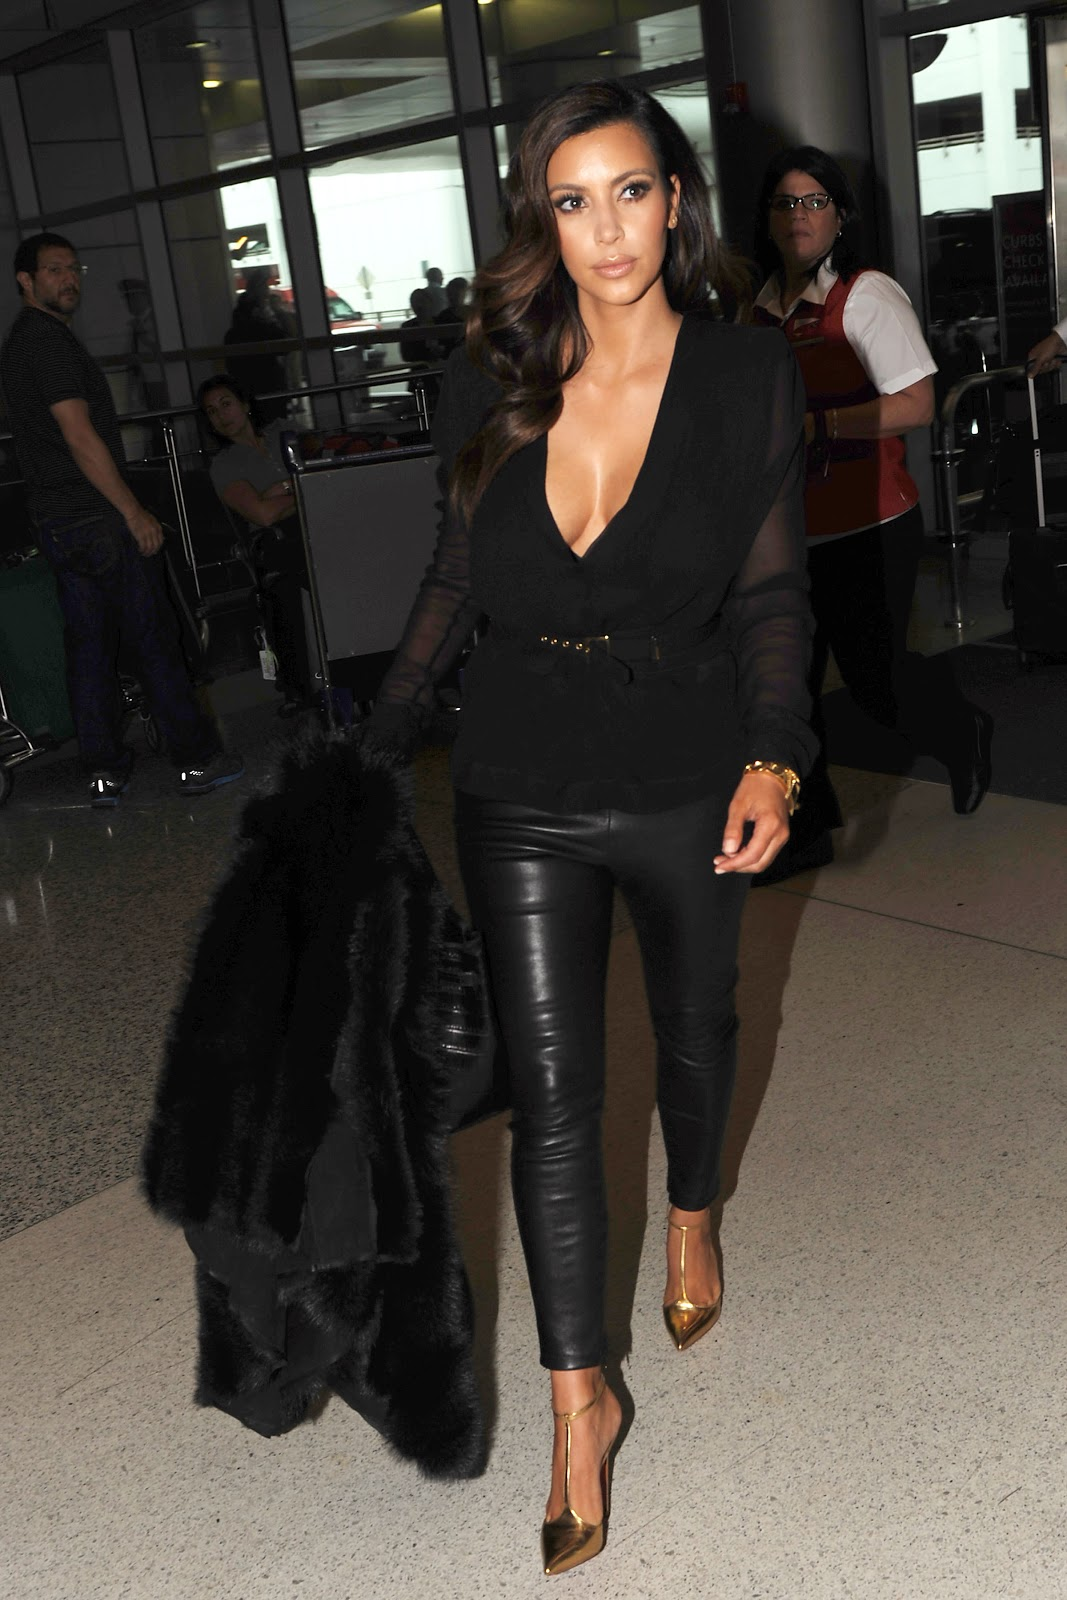 http://2.bp.blogspot.com/-htr_9lIrCvQ/UIB4bBdFLBI/AAAAAAAAUNM/P4kcsqaGhjU/s1600/Kim+Kardashian+arriving+at+Miami+Airport+October+17th+2012+-06.jpg